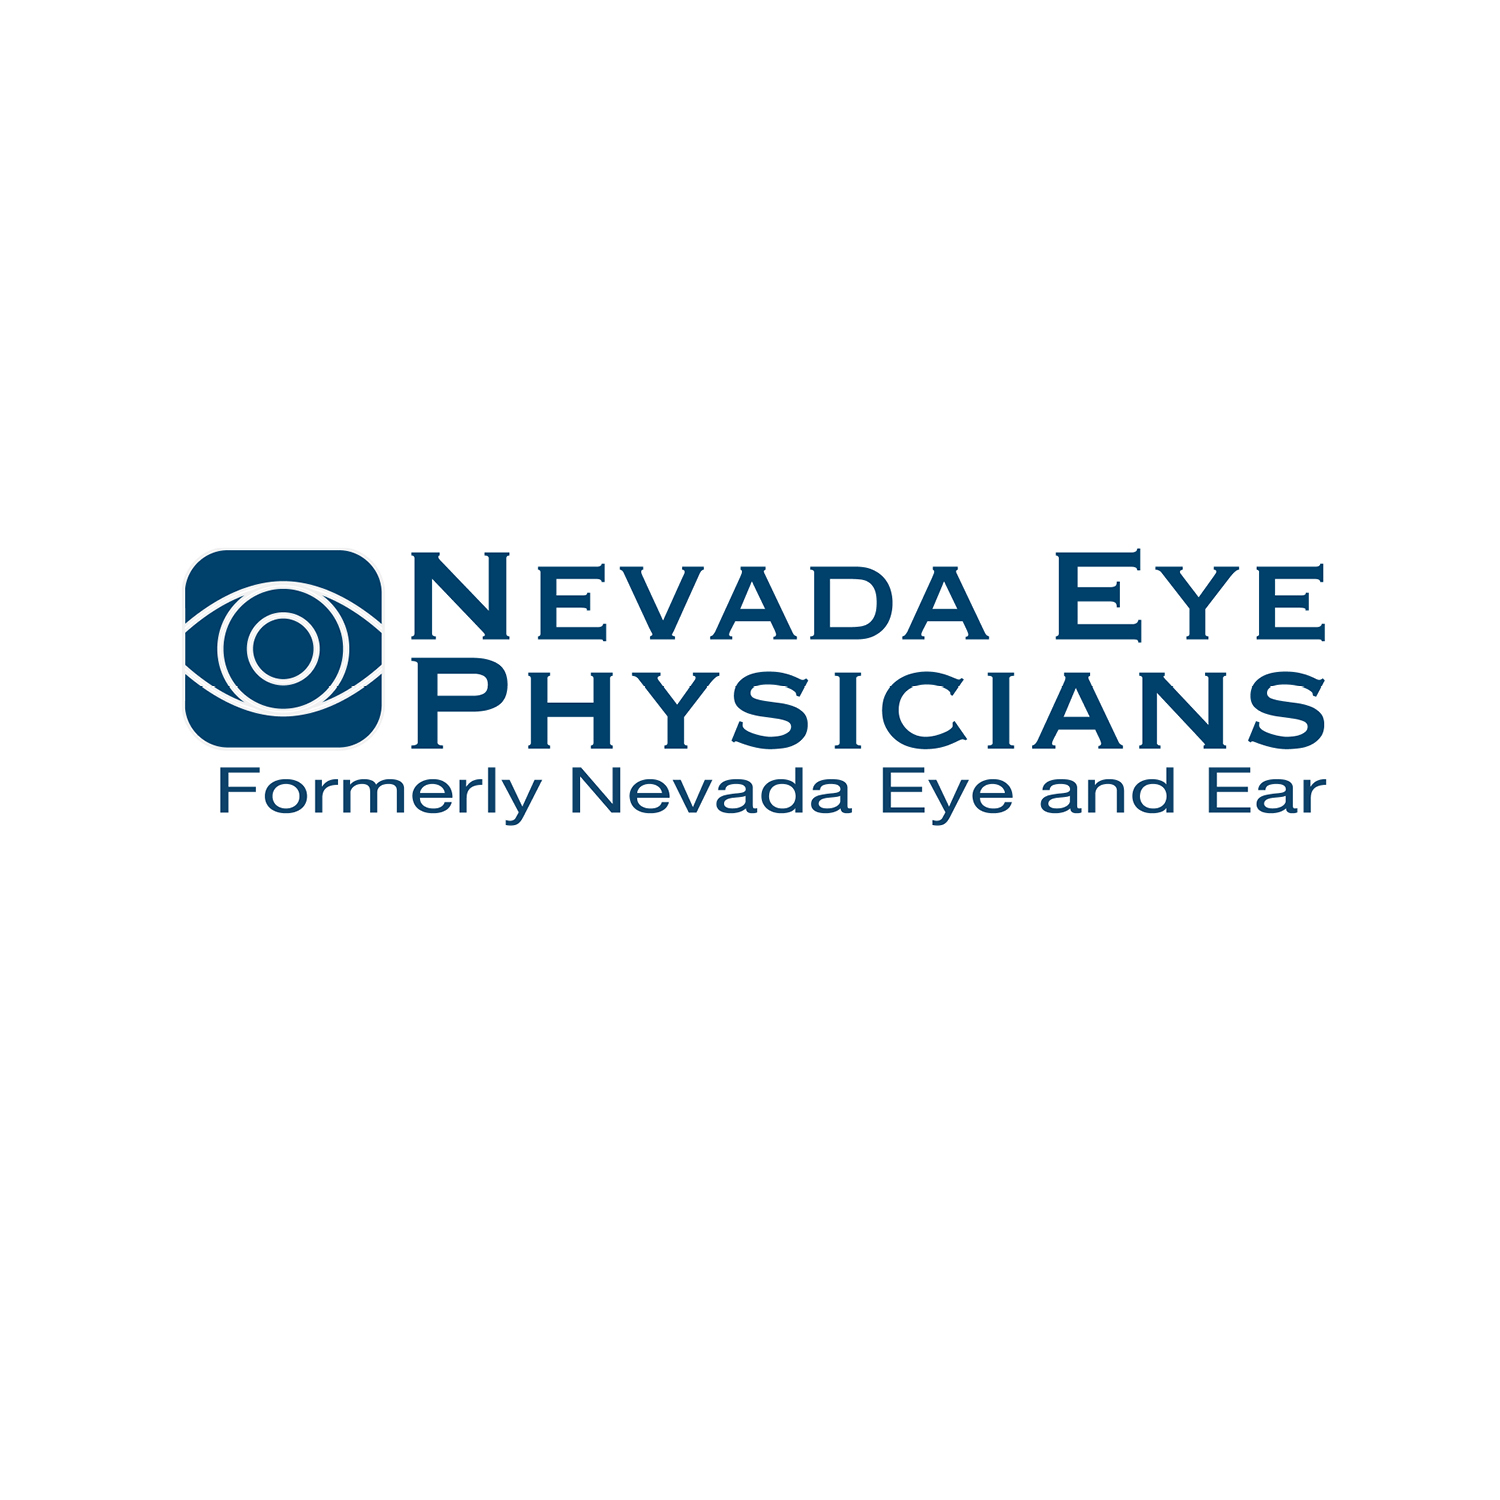 Nevada Eye Physicians